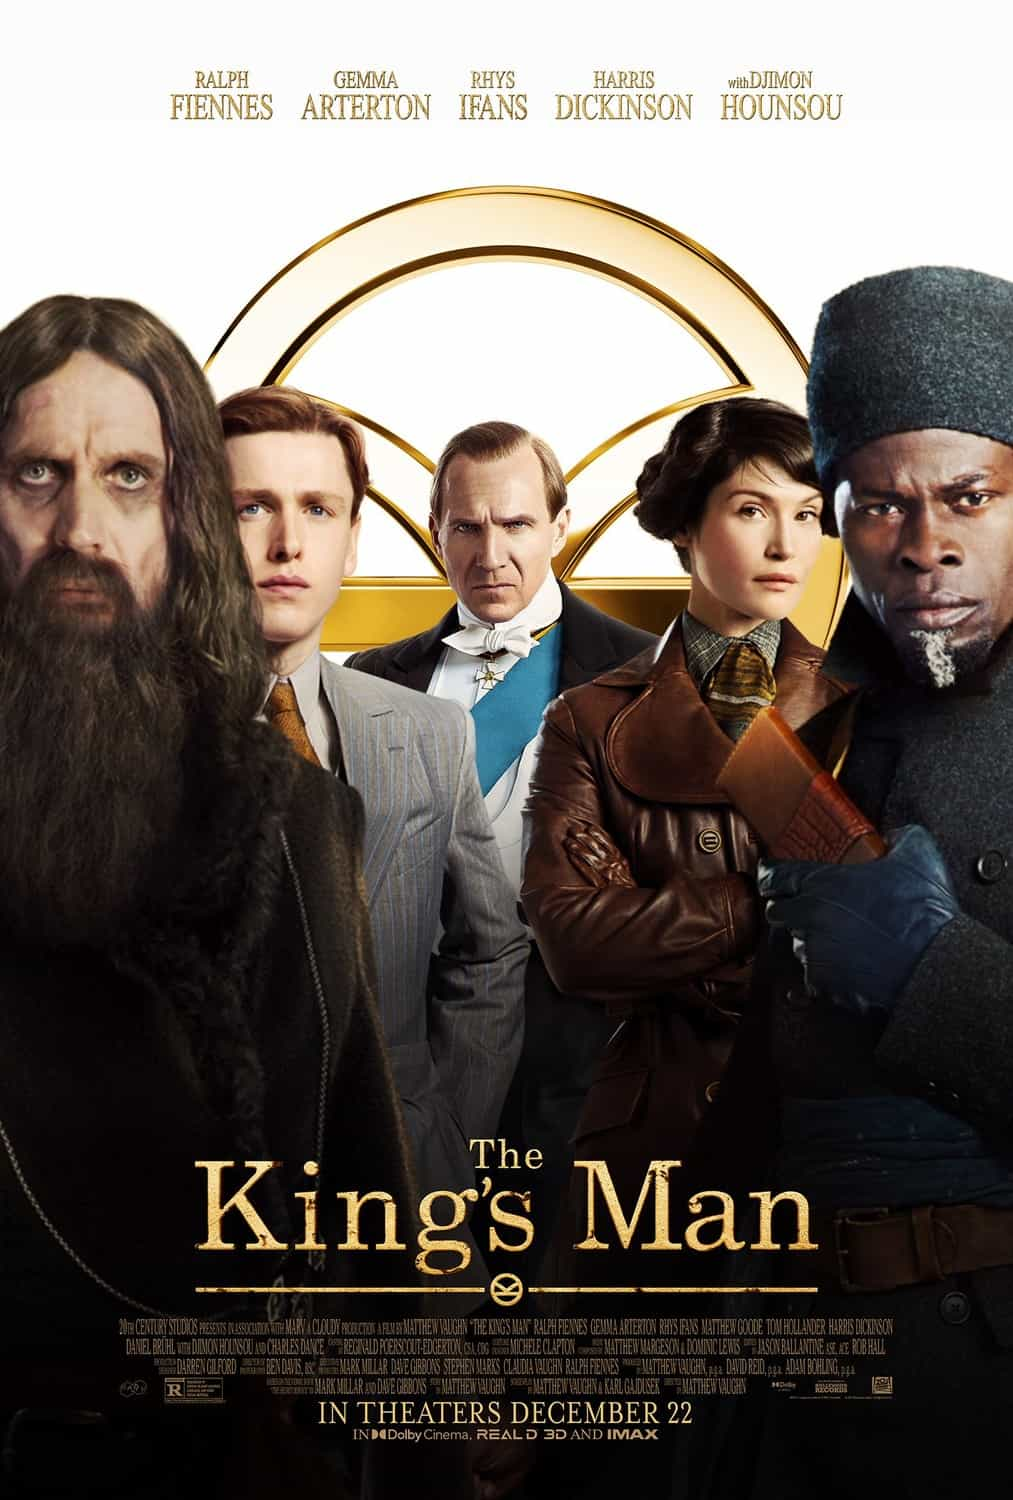 New poster release for The Kings Man starring Ralph Fiennes - movie release date 16th September 2020